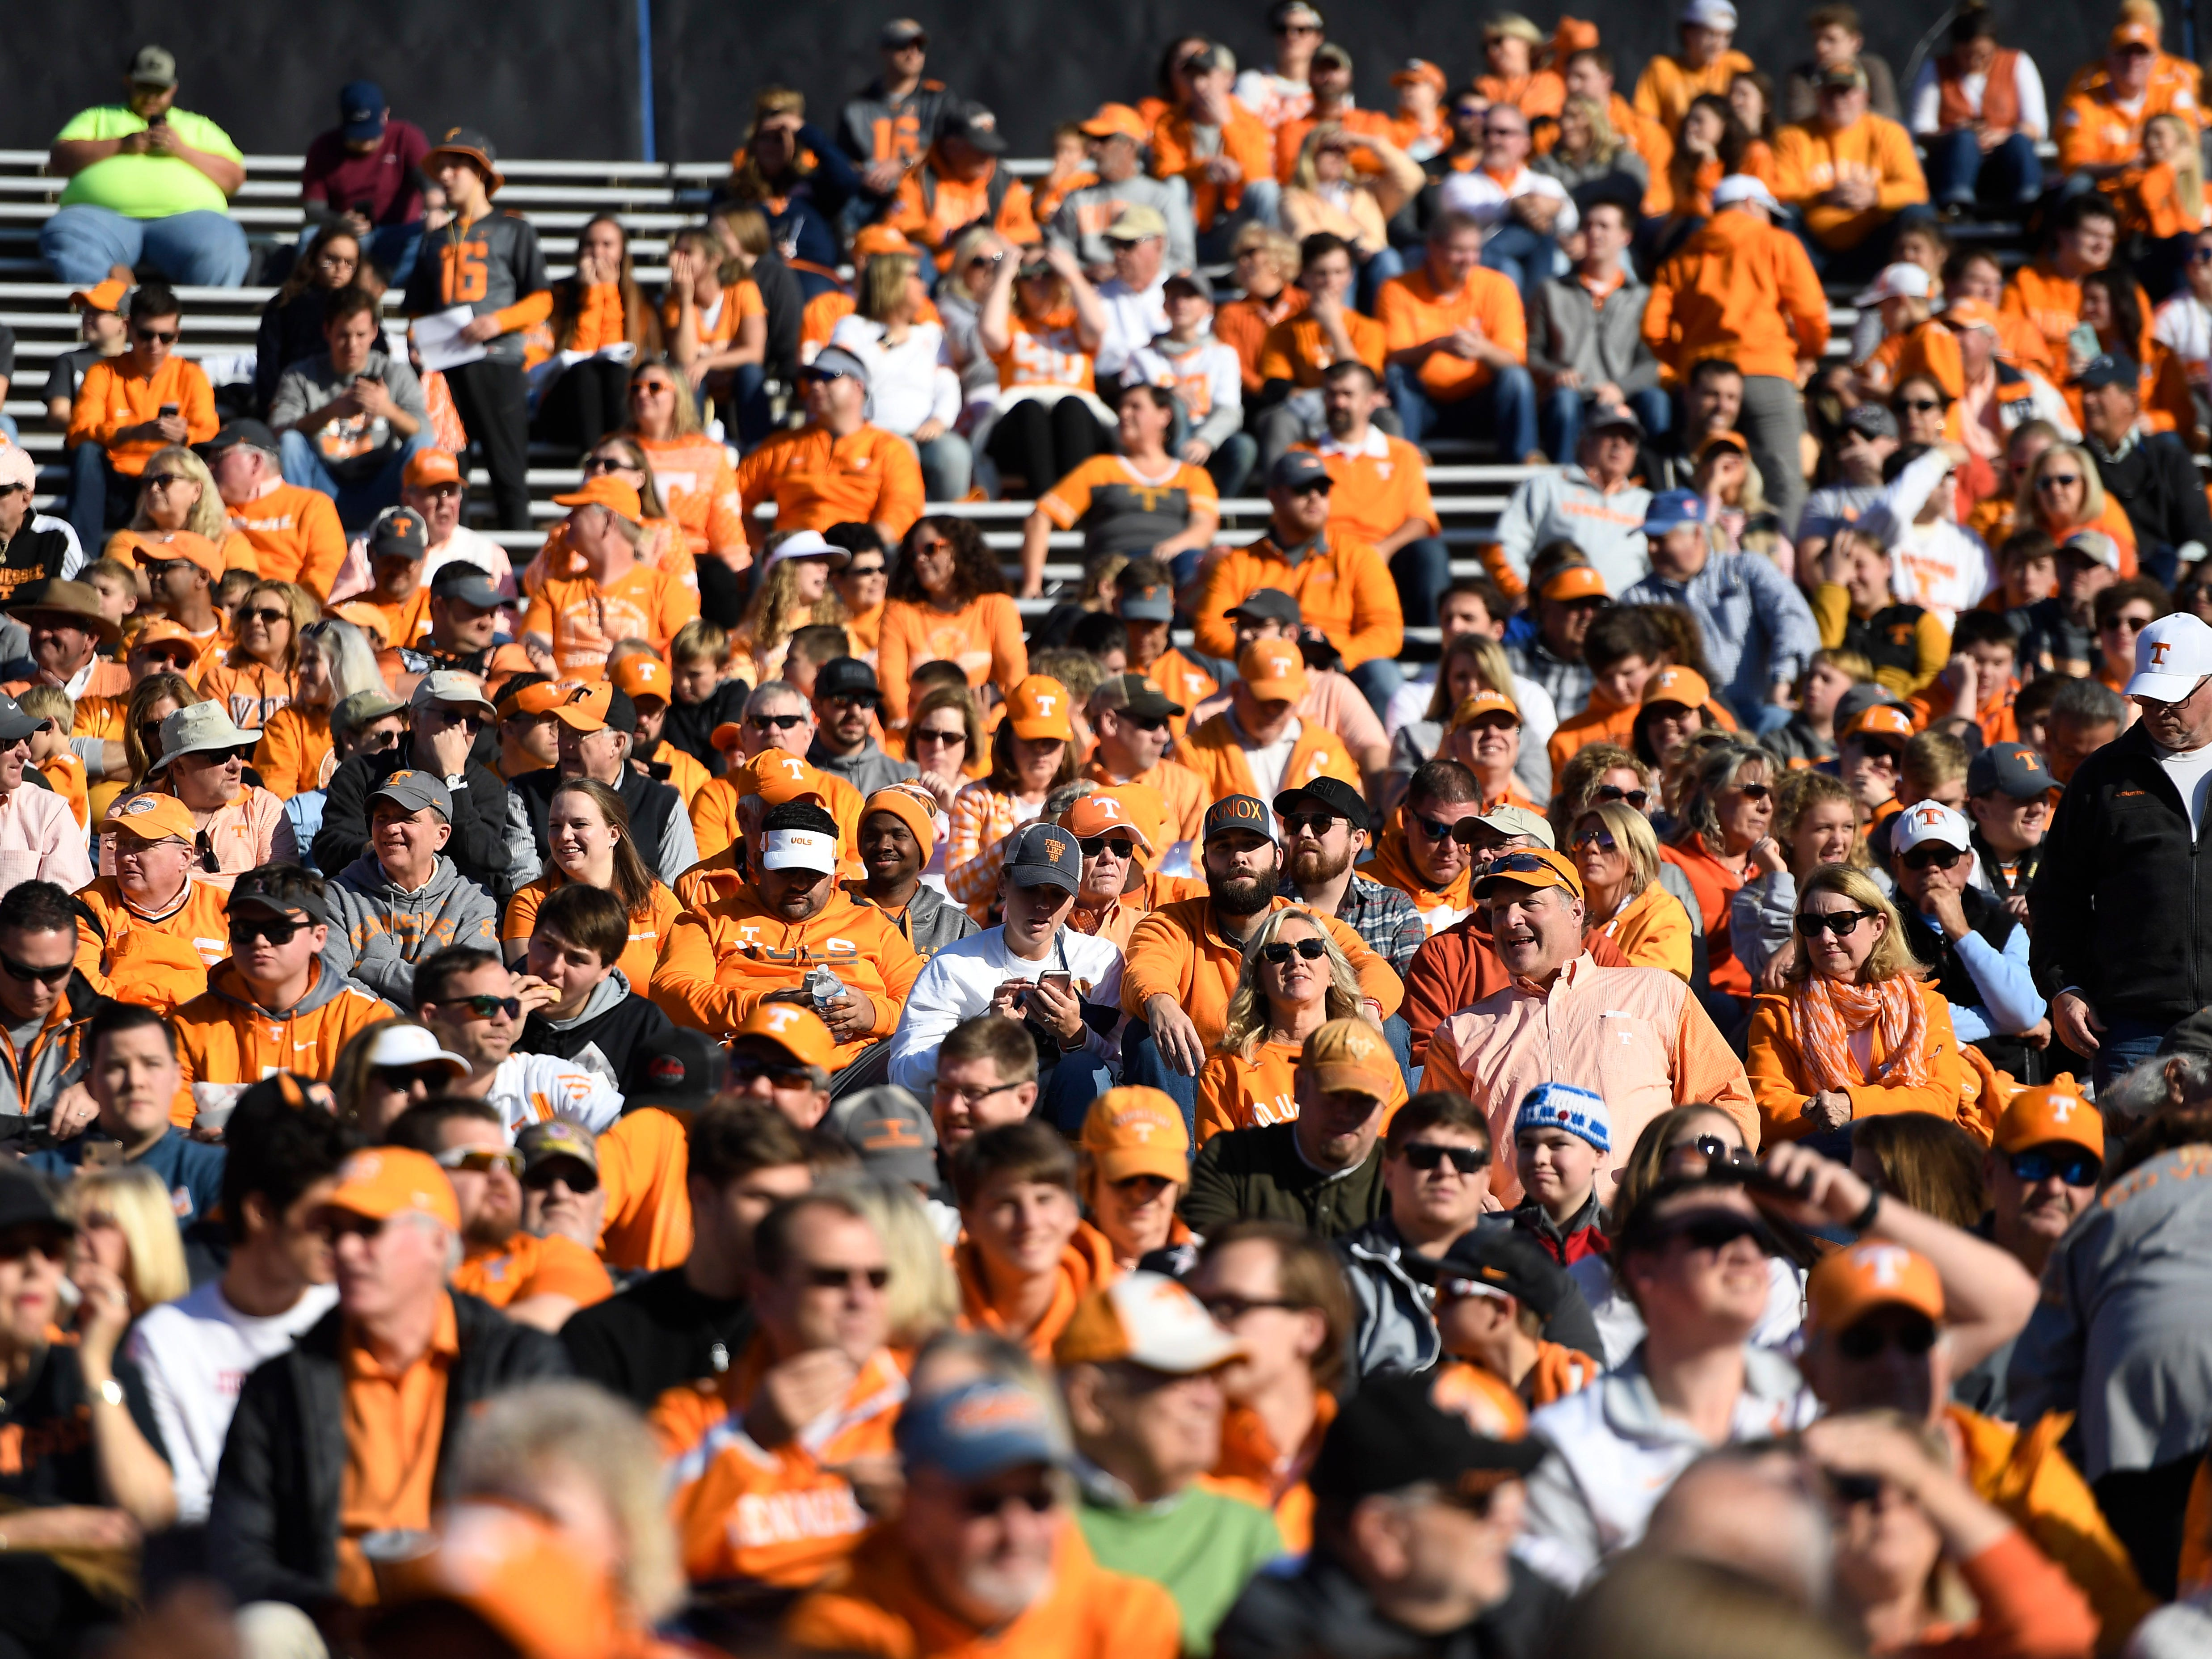 A sea of Tennessee fans wait for the start of the game at Vanderbilt Stadium Saturday, Nov. 24, 2018, in Nashville, Tenn.